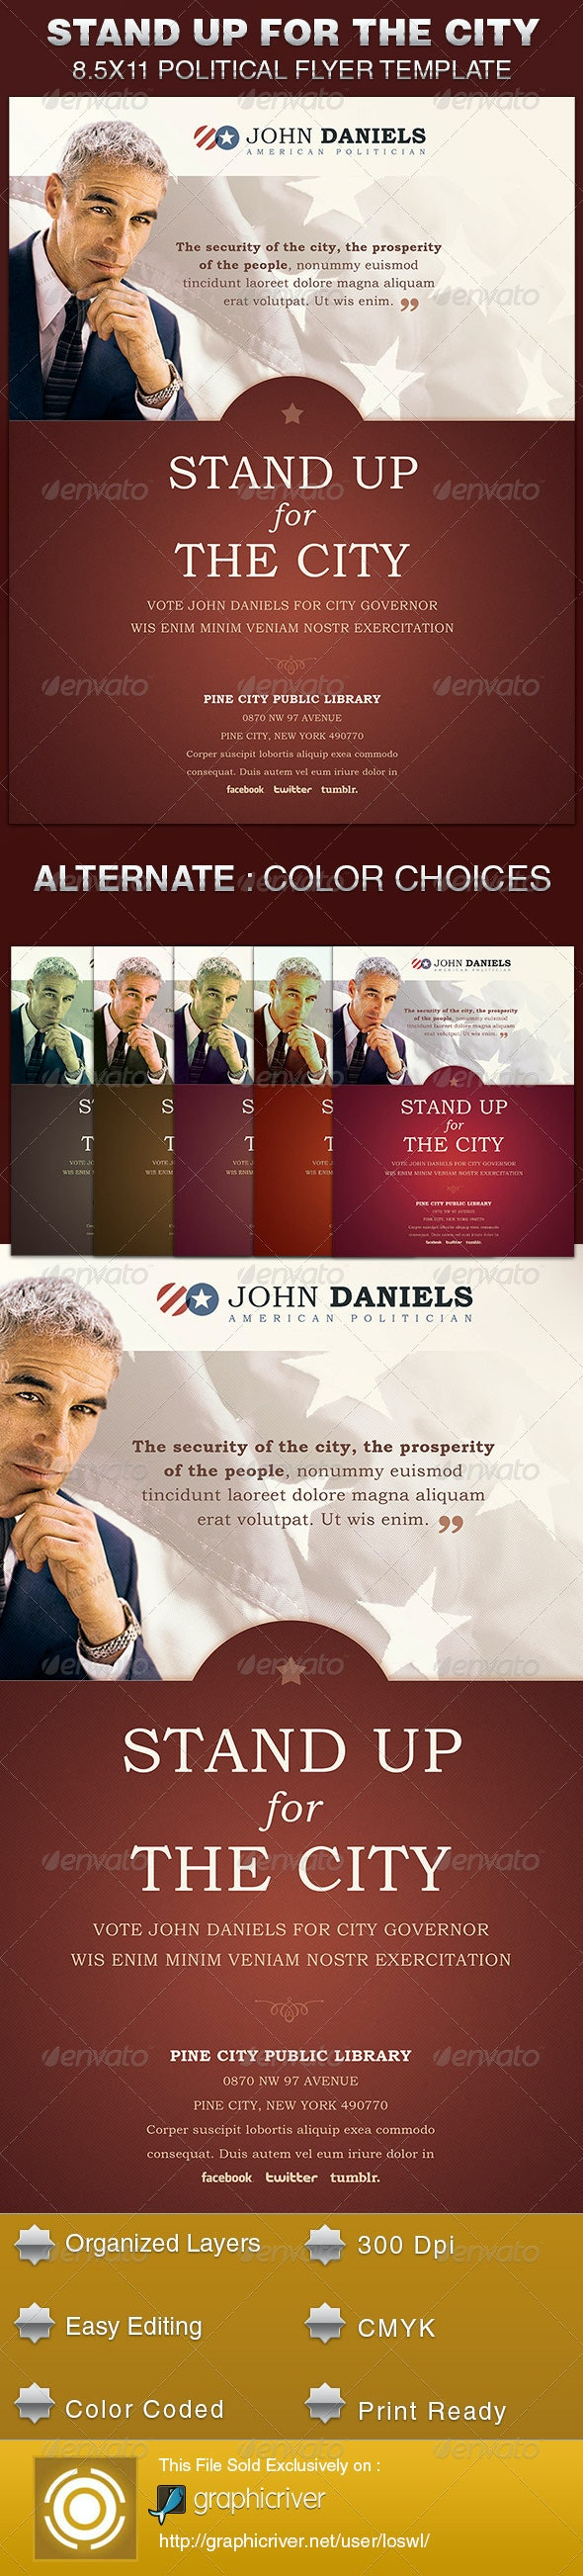 Stand Up for the City Political Flyer Template - Print Templates